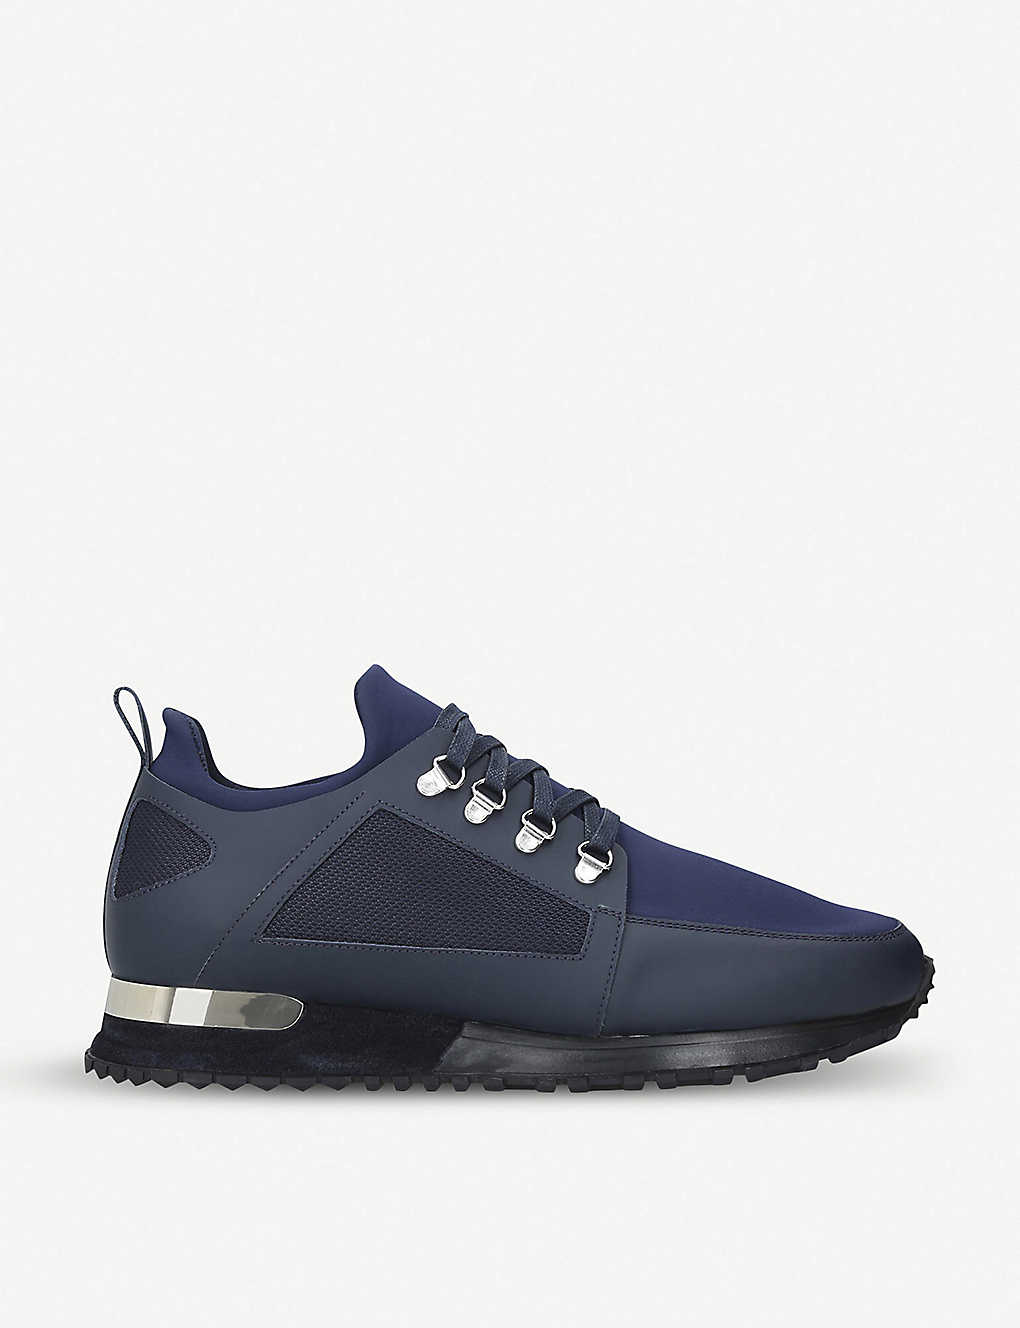 5da92f5e6a0 Hiker leather and neoprene trainers - Navy ...